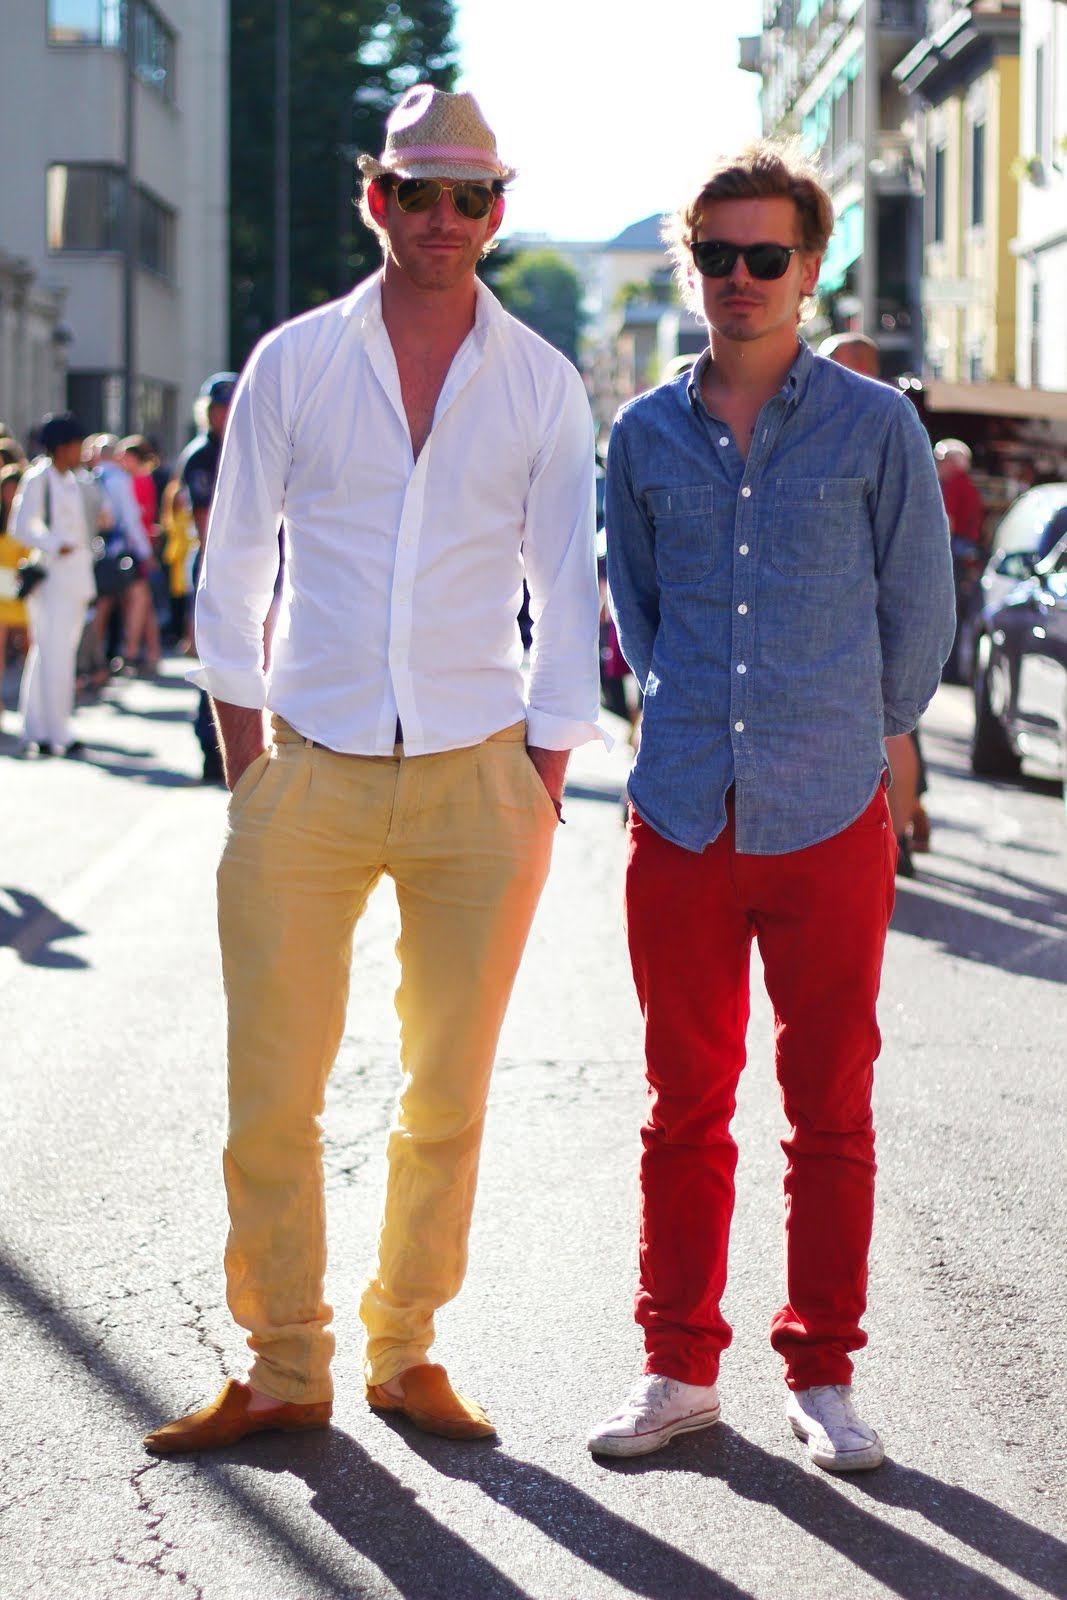 17 Best images about Menswear Trend: Colored Trousers on Pinterest ...